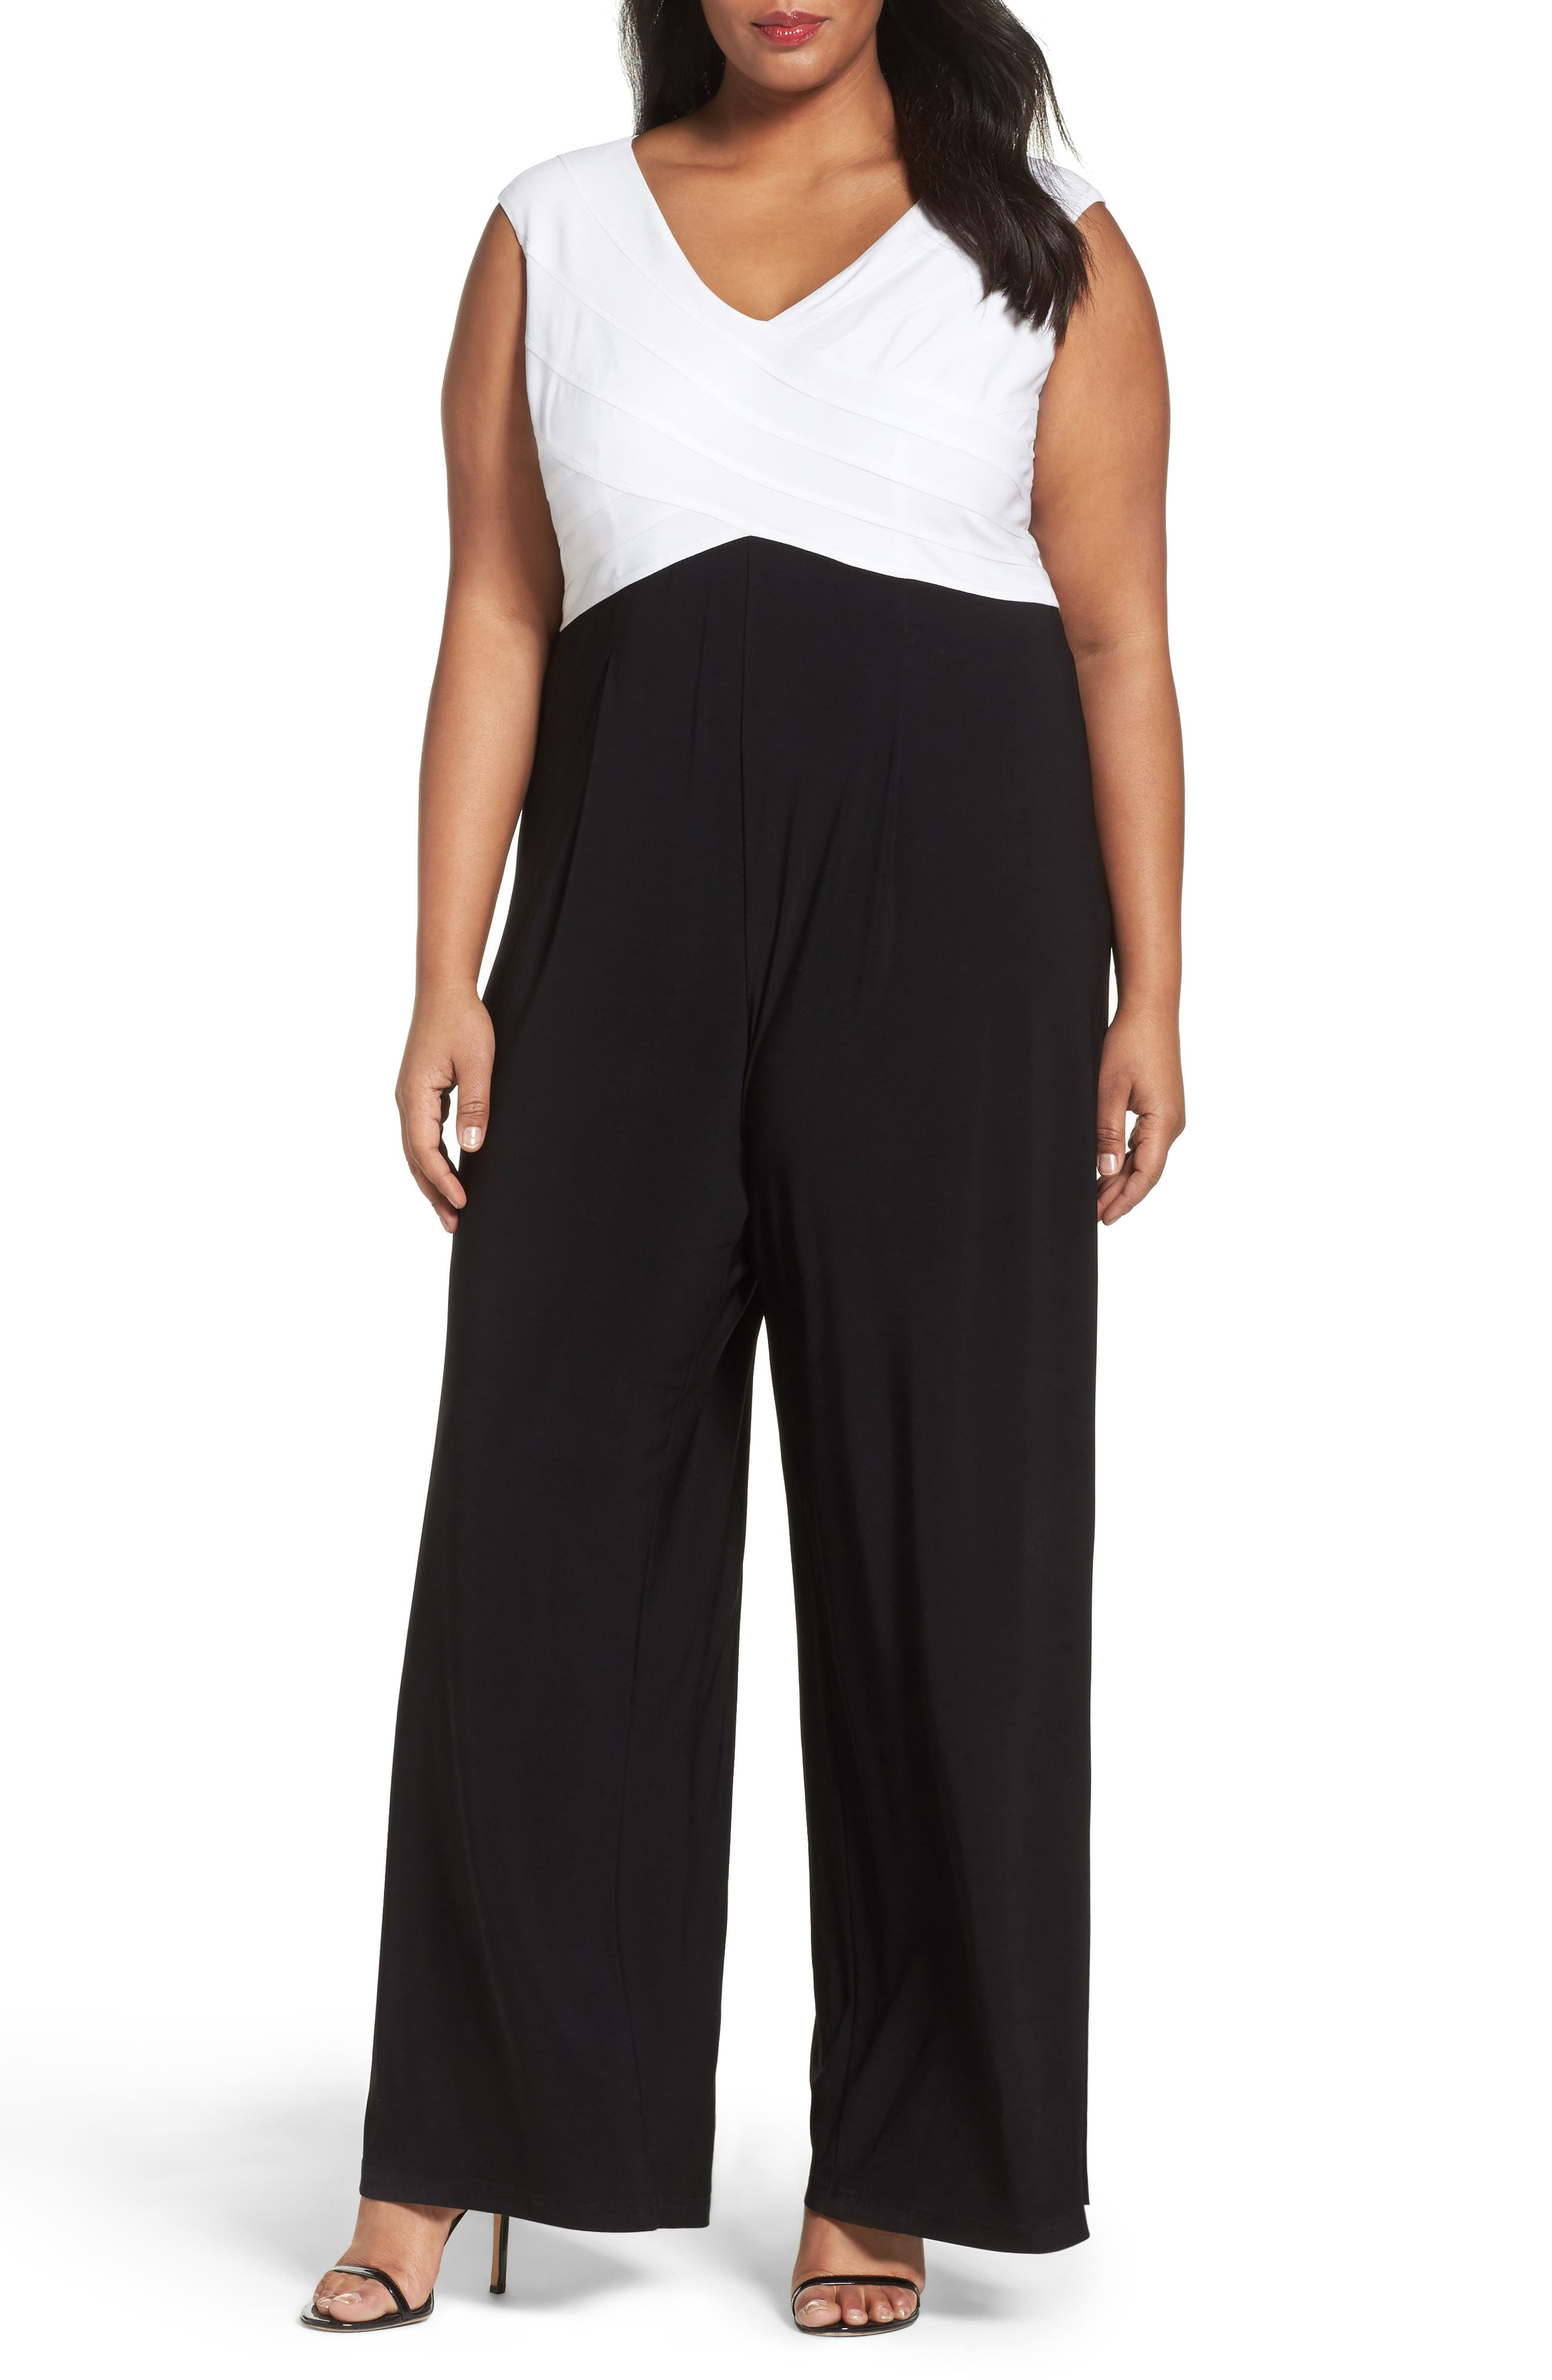 Adrianna Papell Colorblock Jersey Jumpsuit (Plus Size)